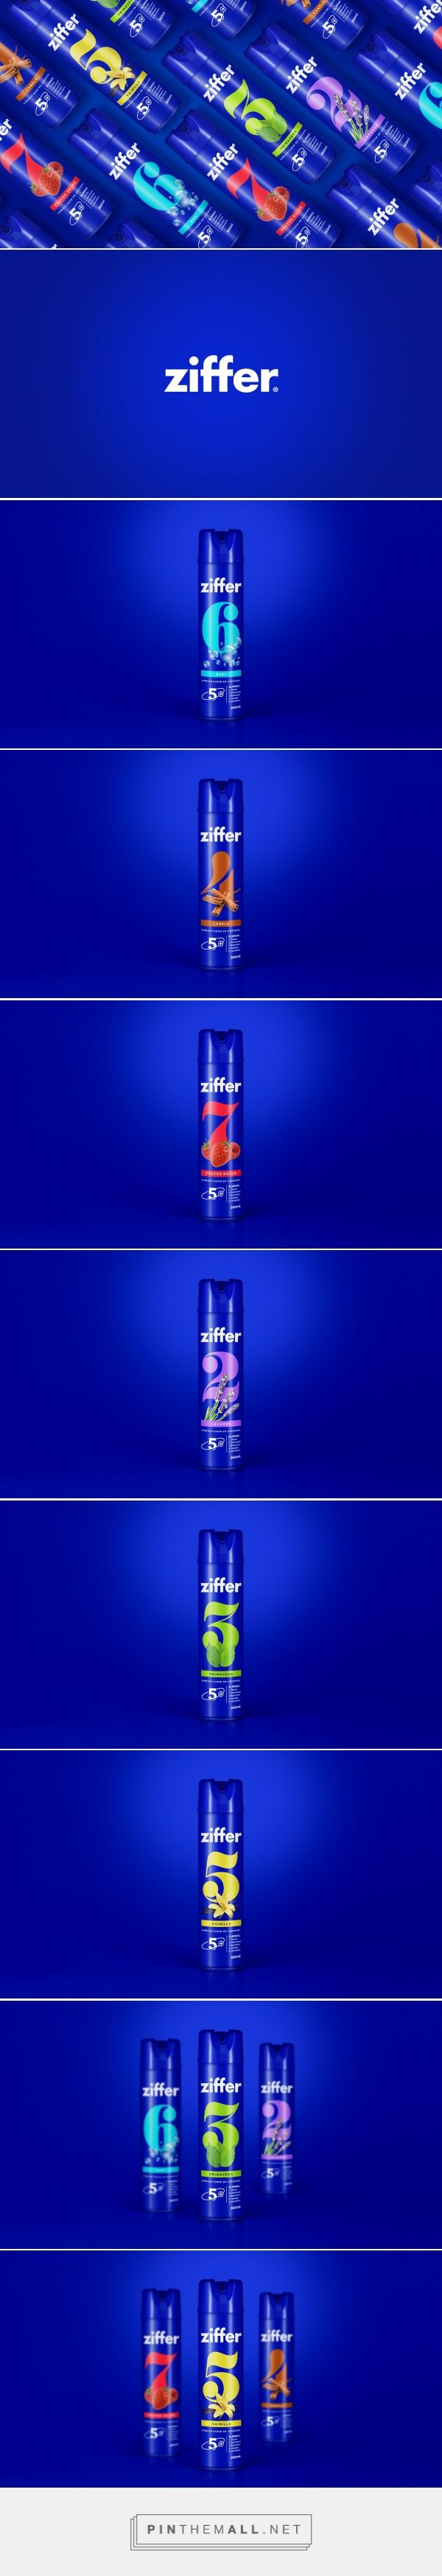 ZIFFER Air Freshener packaging design by Vórtice·Estudio -  http://www.packagingoftheworld.com/2017/05/ziffer.html